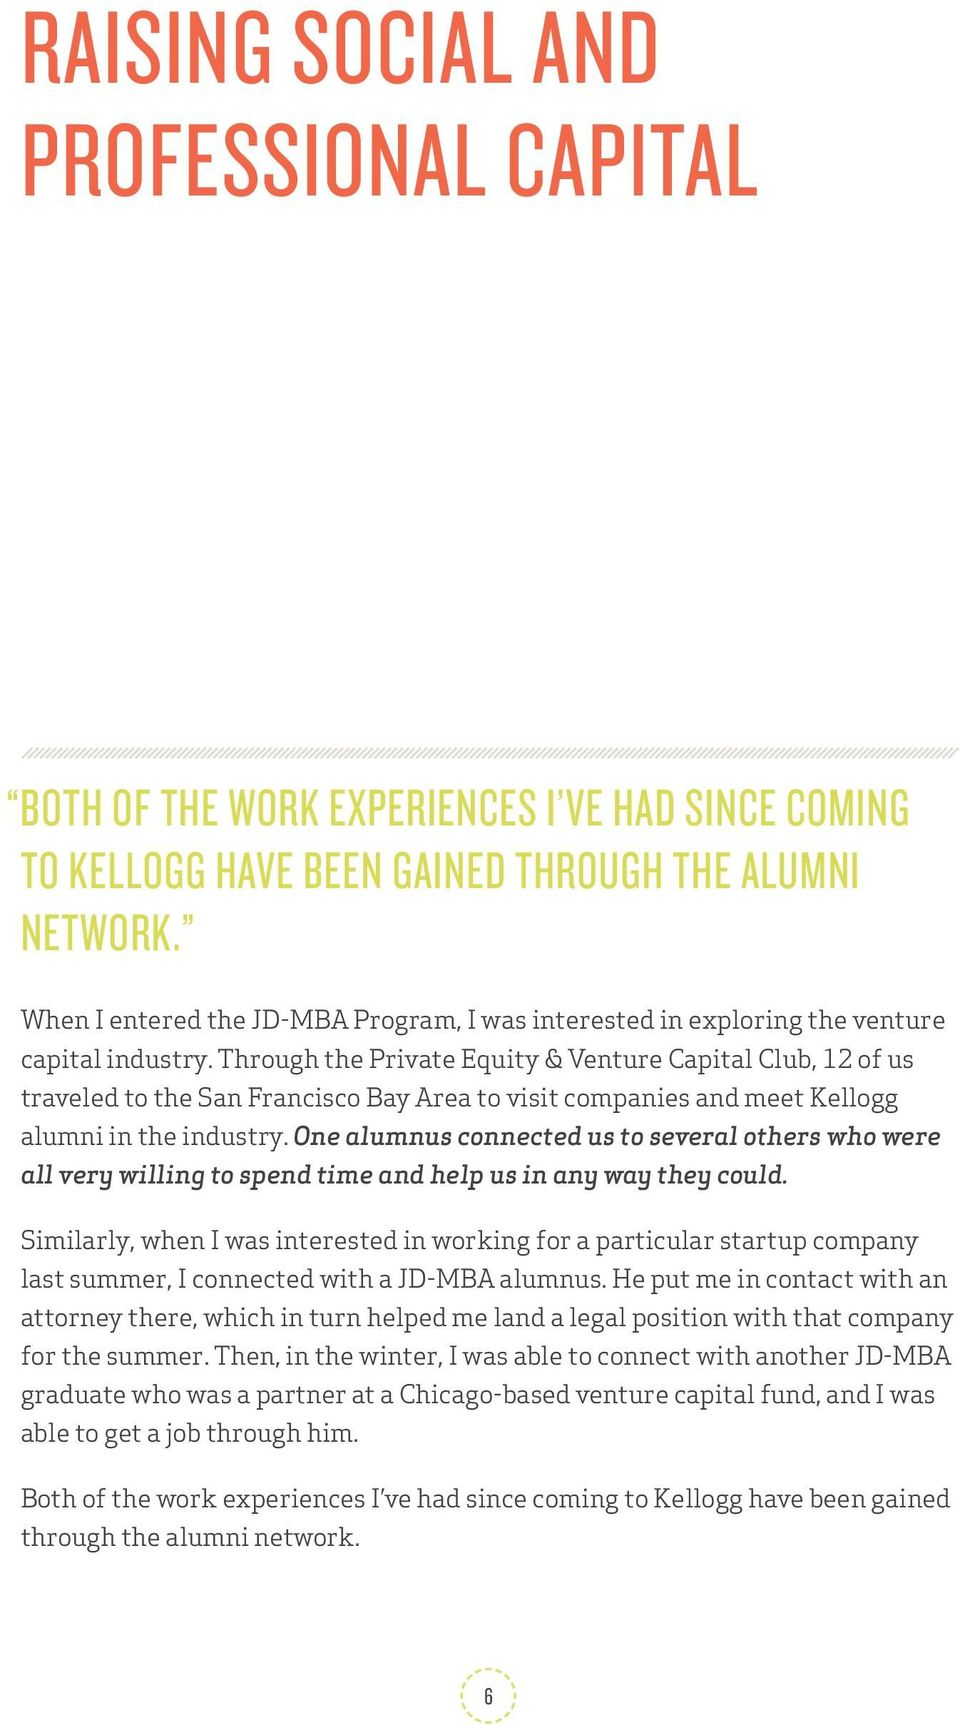 Through the Private Equity & Venture Capital Club, 12 of us traveled to the San Francisco Bay Area to visit companies and meet Kellogg alumni in the industry.